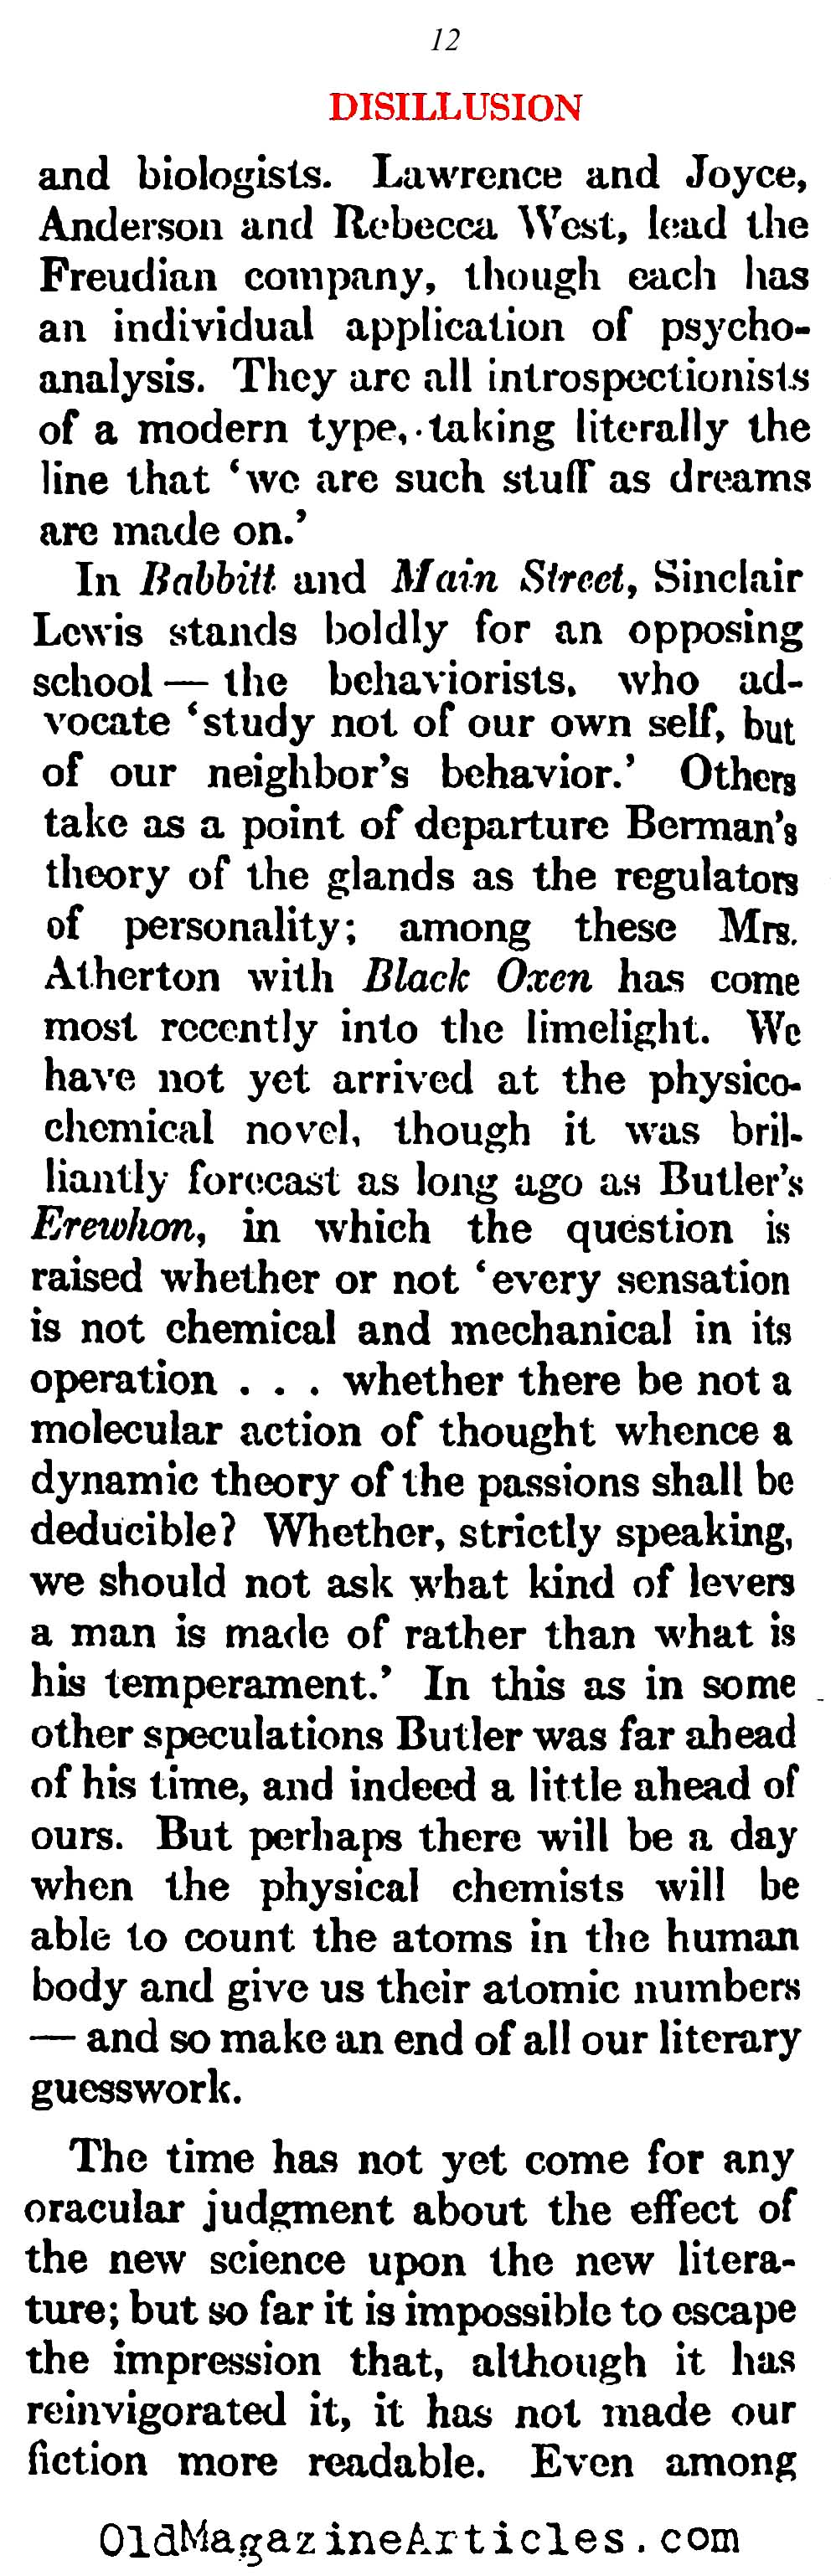 The Pessimism That Followed W.W. I   (Atlantic Monthly, 1923)